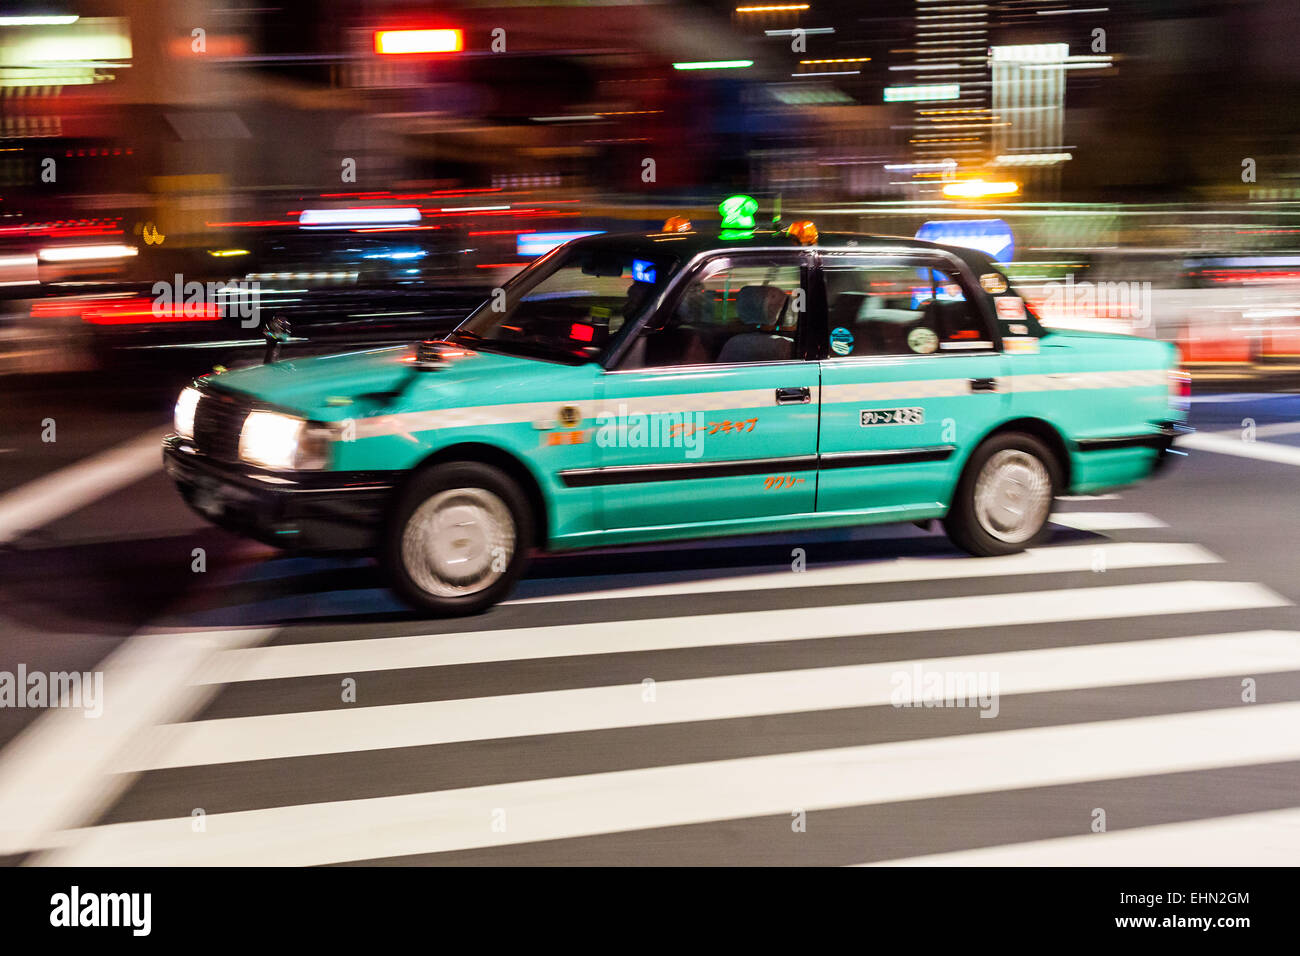 Taxicab in the streets of Tokyo, Japan. - Stock Image